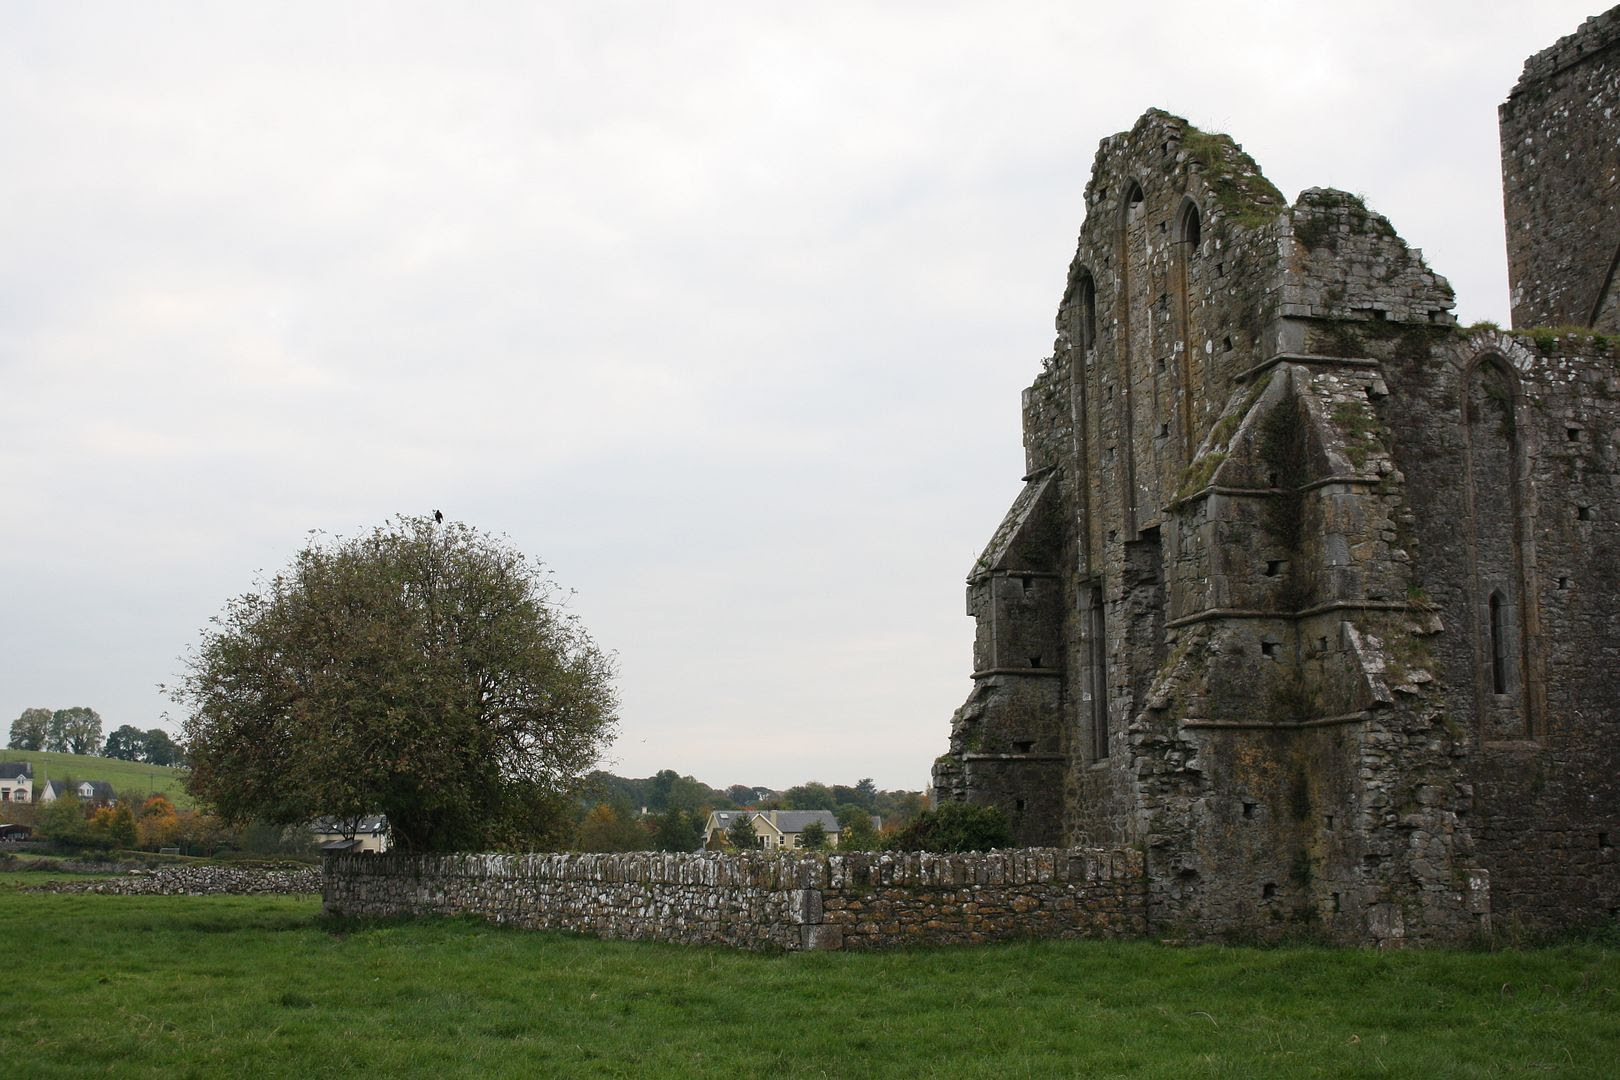 Hore Abbey, Cashel, Ireland photo IMG_3740_zpsfj2x4h6n.jpg